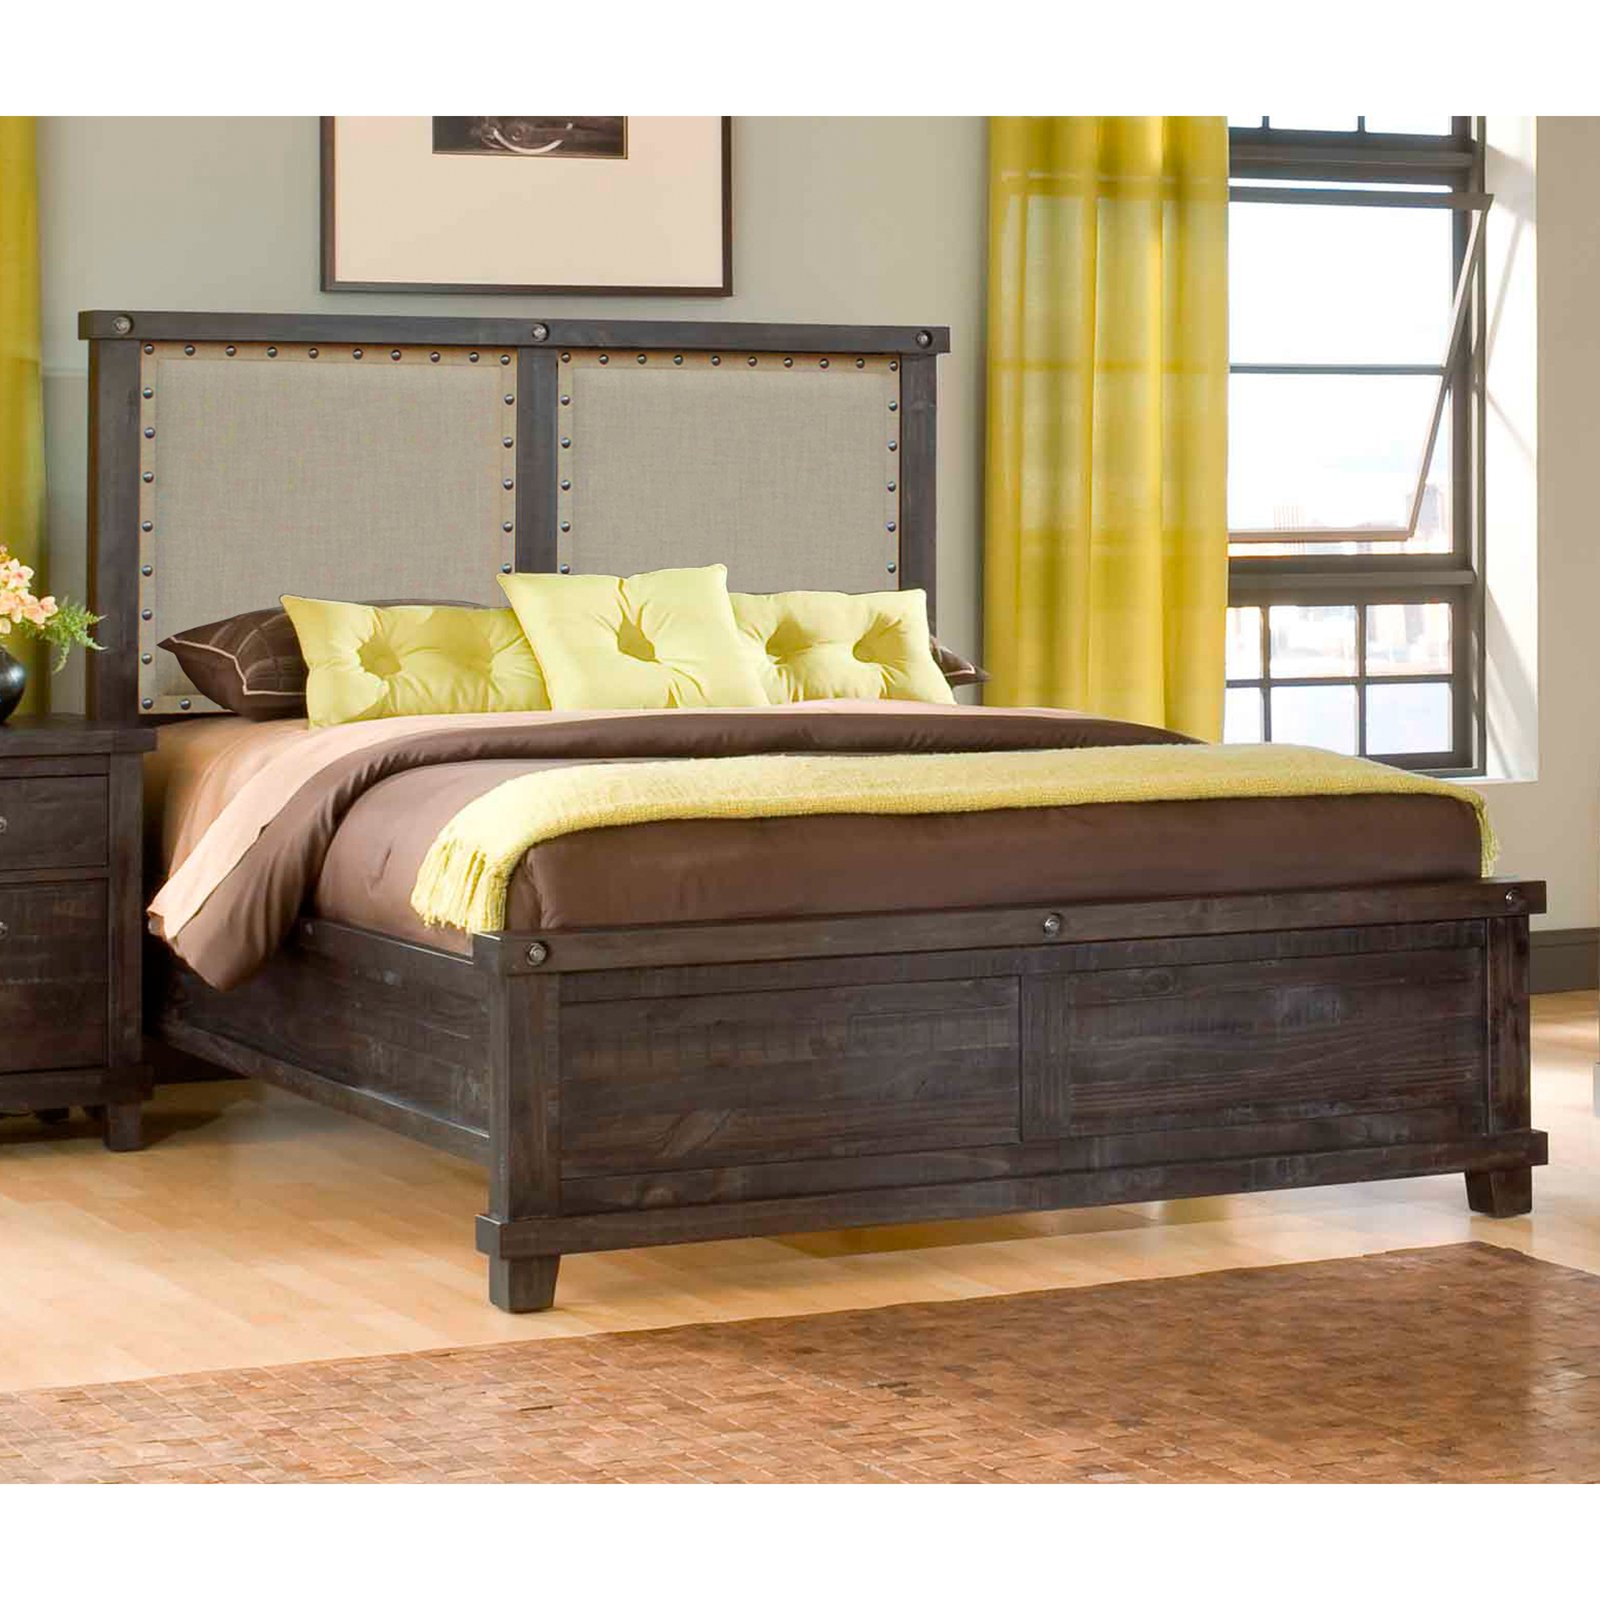 Yosemite Upholstered Panel Bed